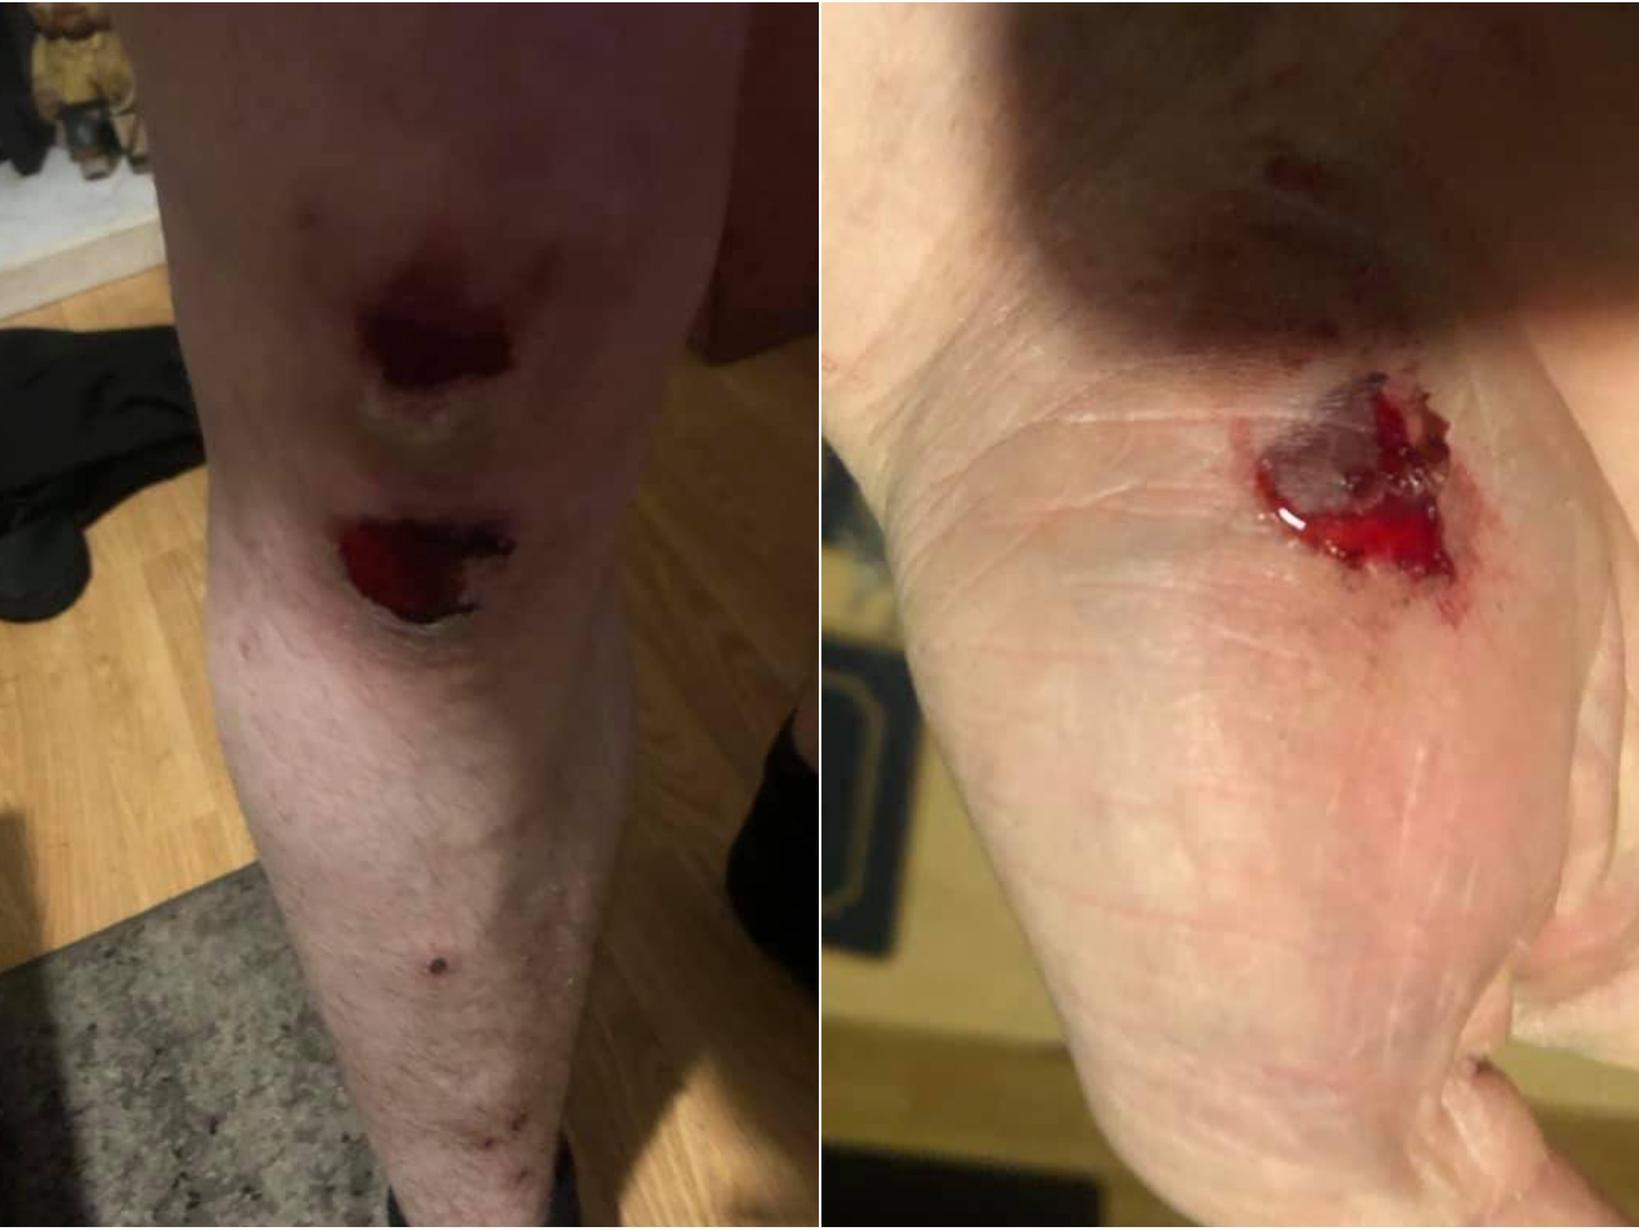 'I was scared for my life': Leeds cyclist left terrified after escape bid from alleged bike thief